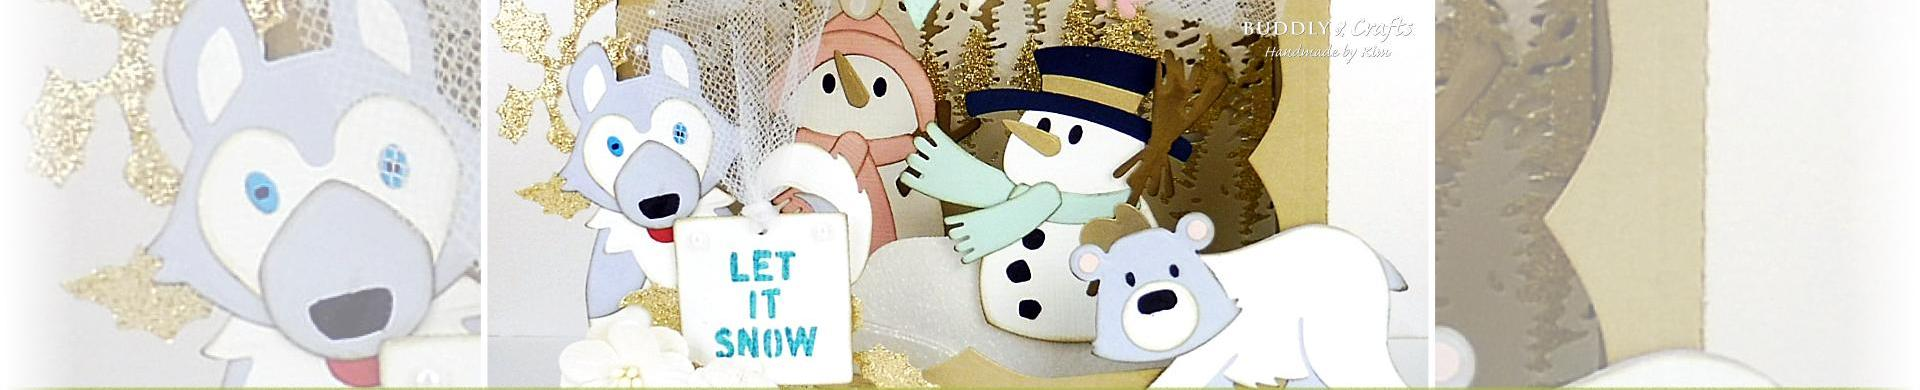 Let It Snow Diorama & Tent Christmas Cards